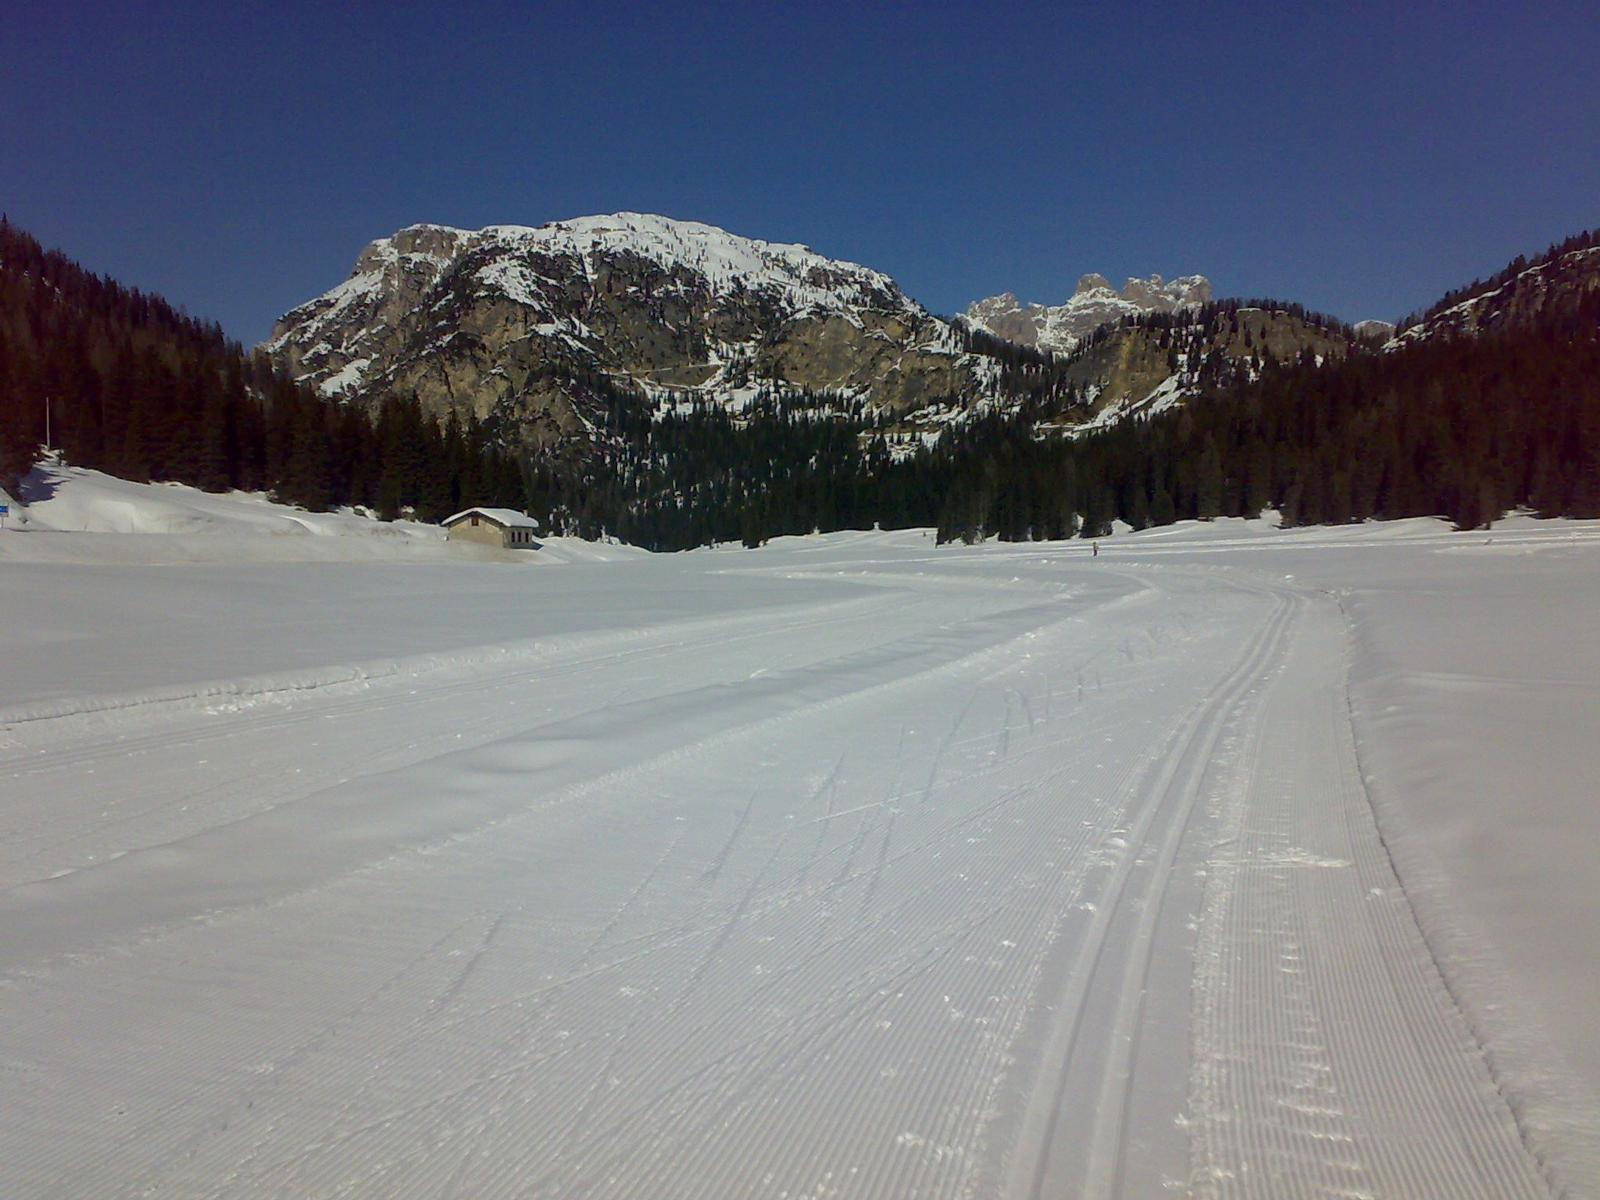 Photo of PISTA DI FONDO DI MISURINA